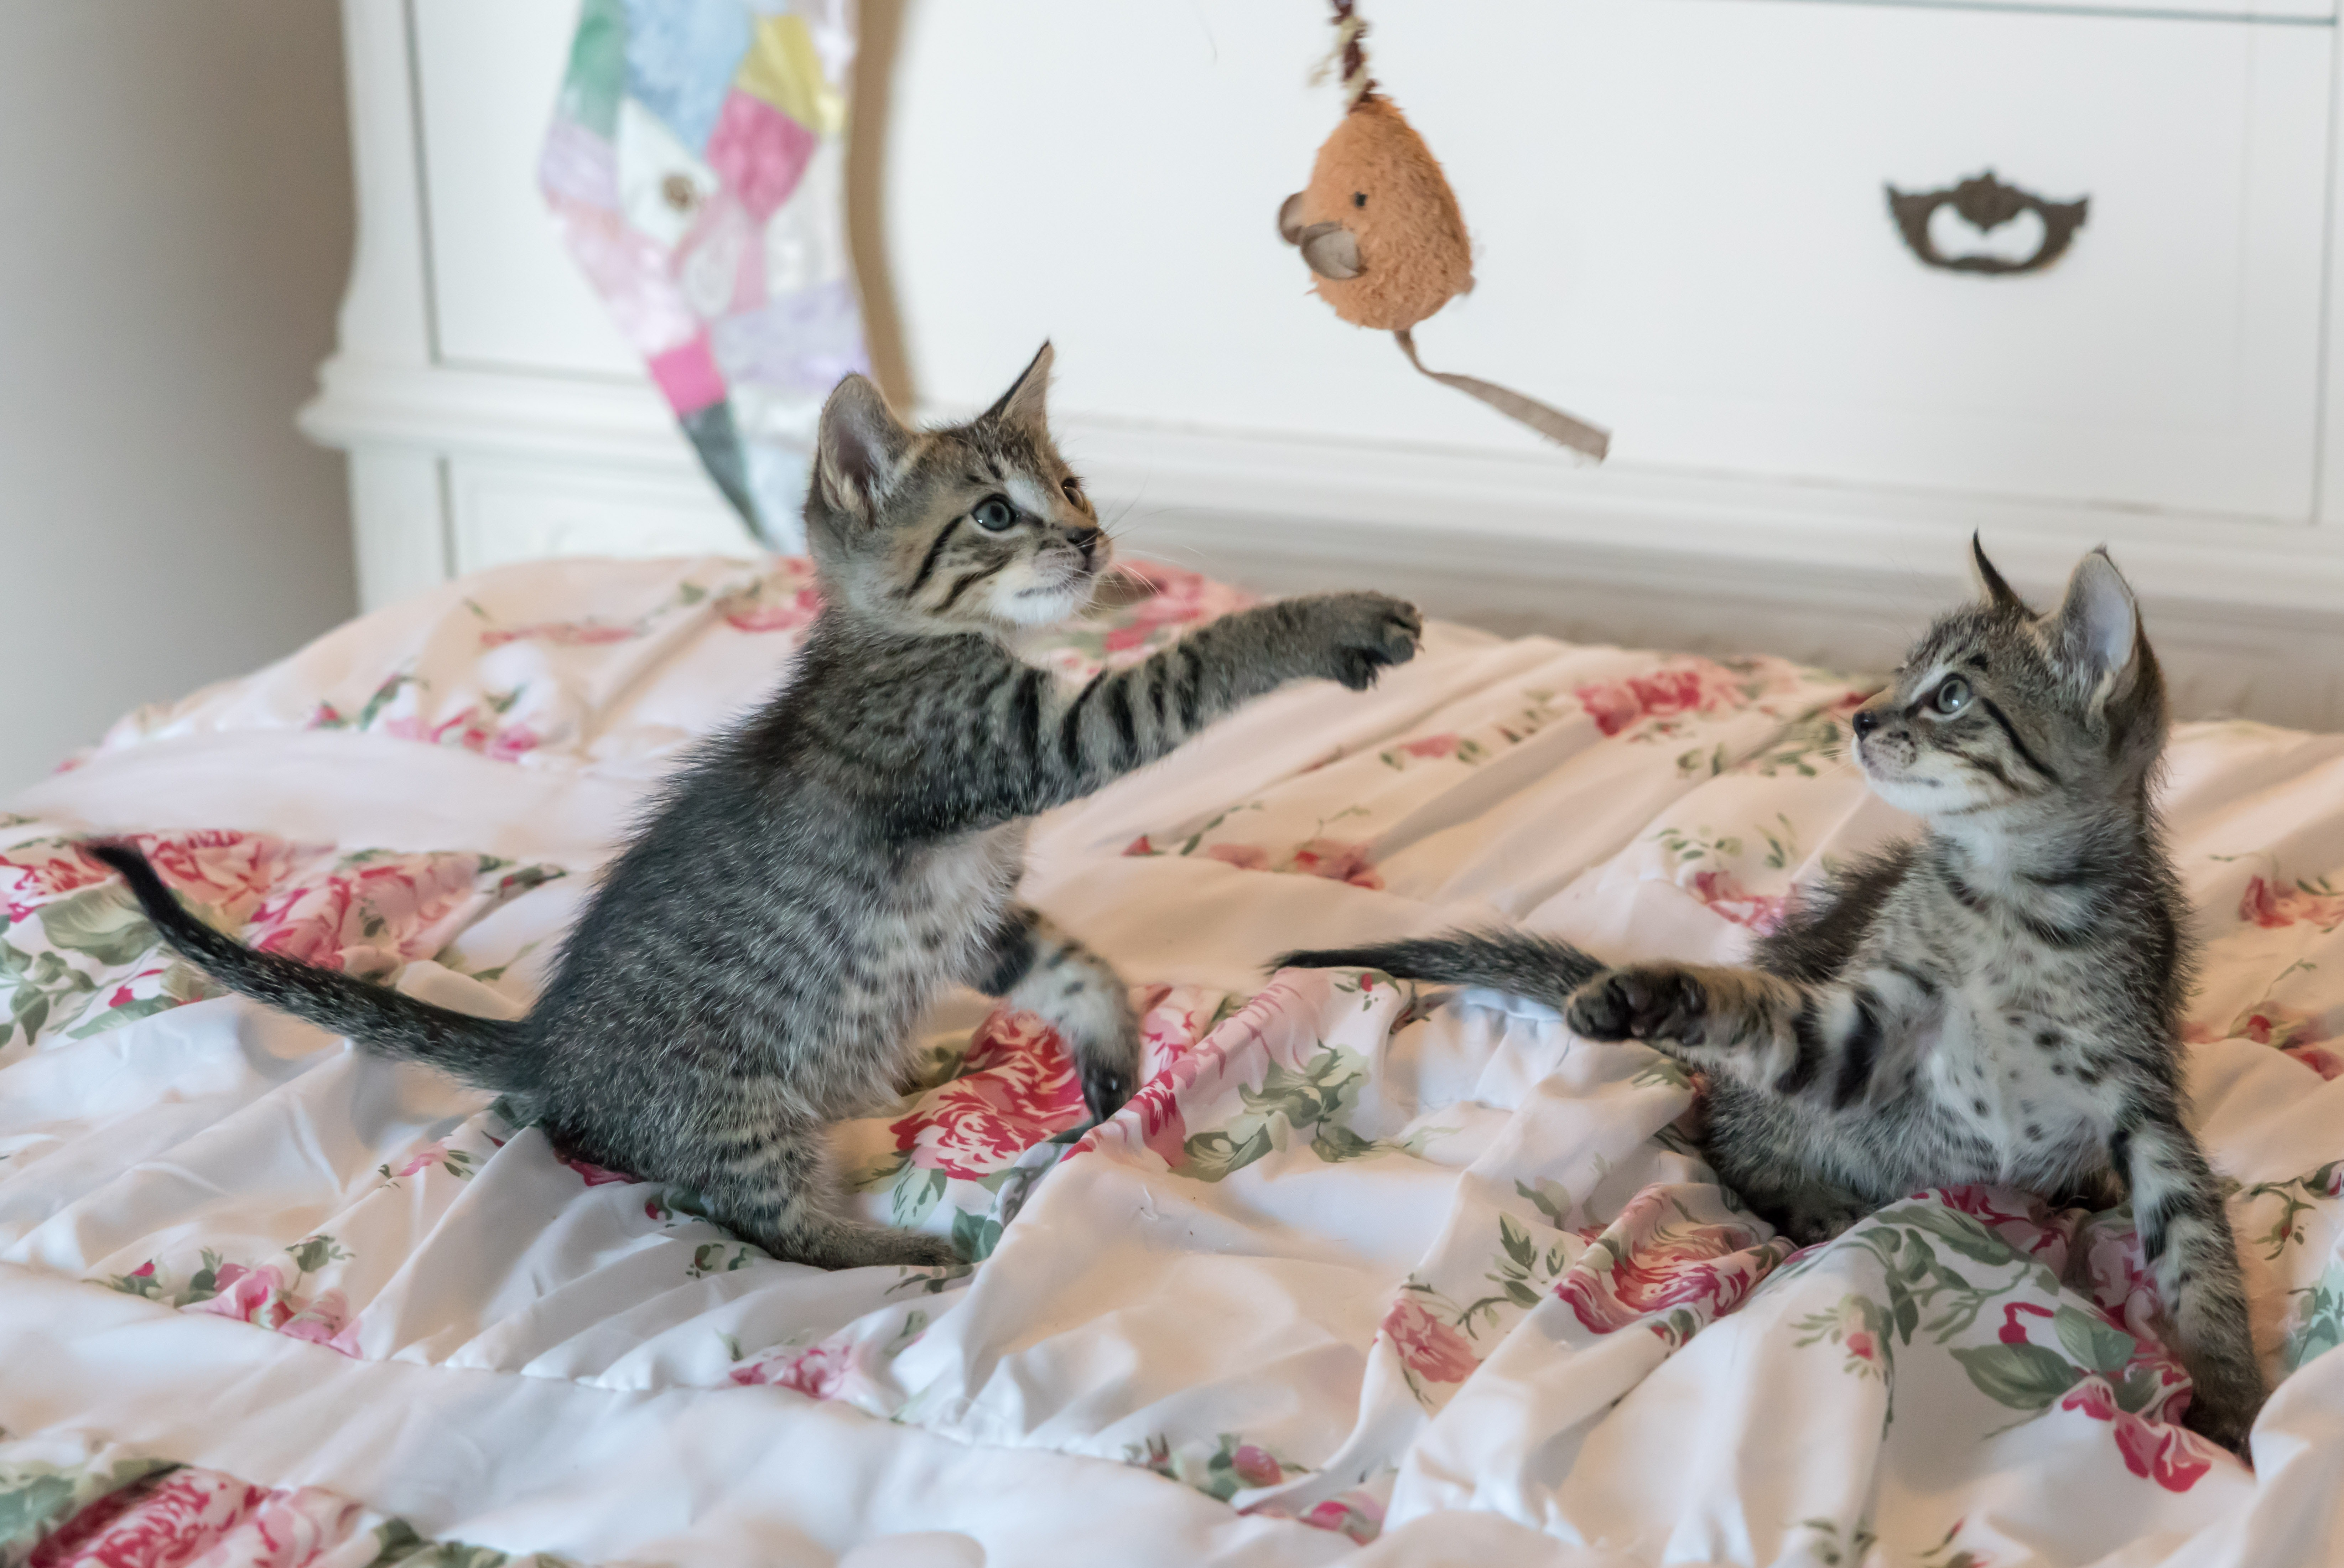 Tabby Kittens on Floral Comforter, Adorable, Gray, Tabby, Sit, HQ Photo